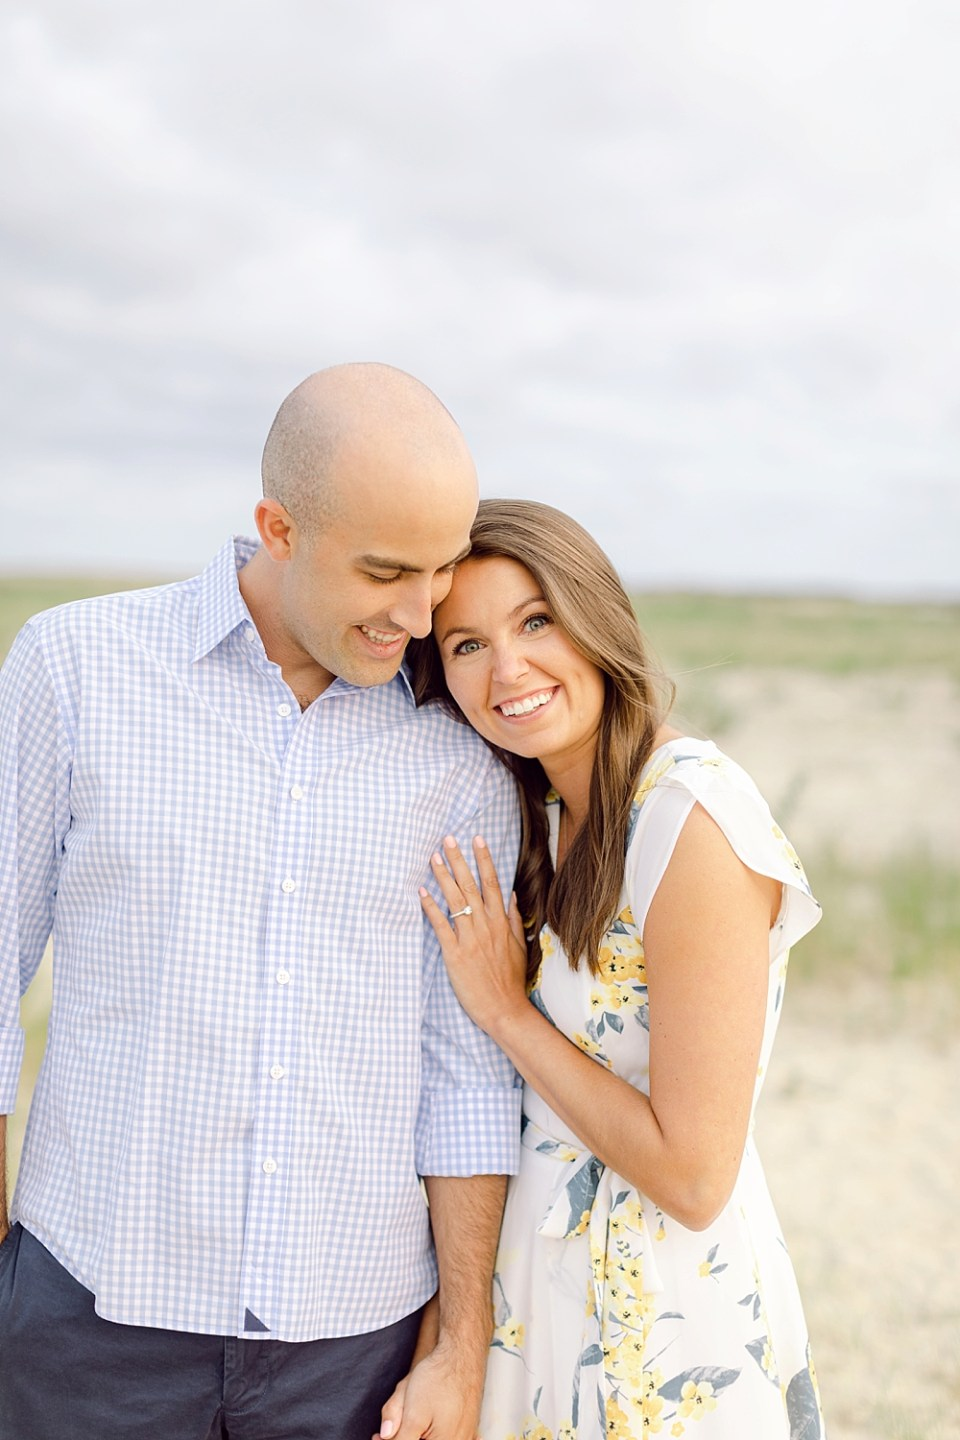 barnegat lighthouse engagement photos | new jersey wedding photographer sarah canning